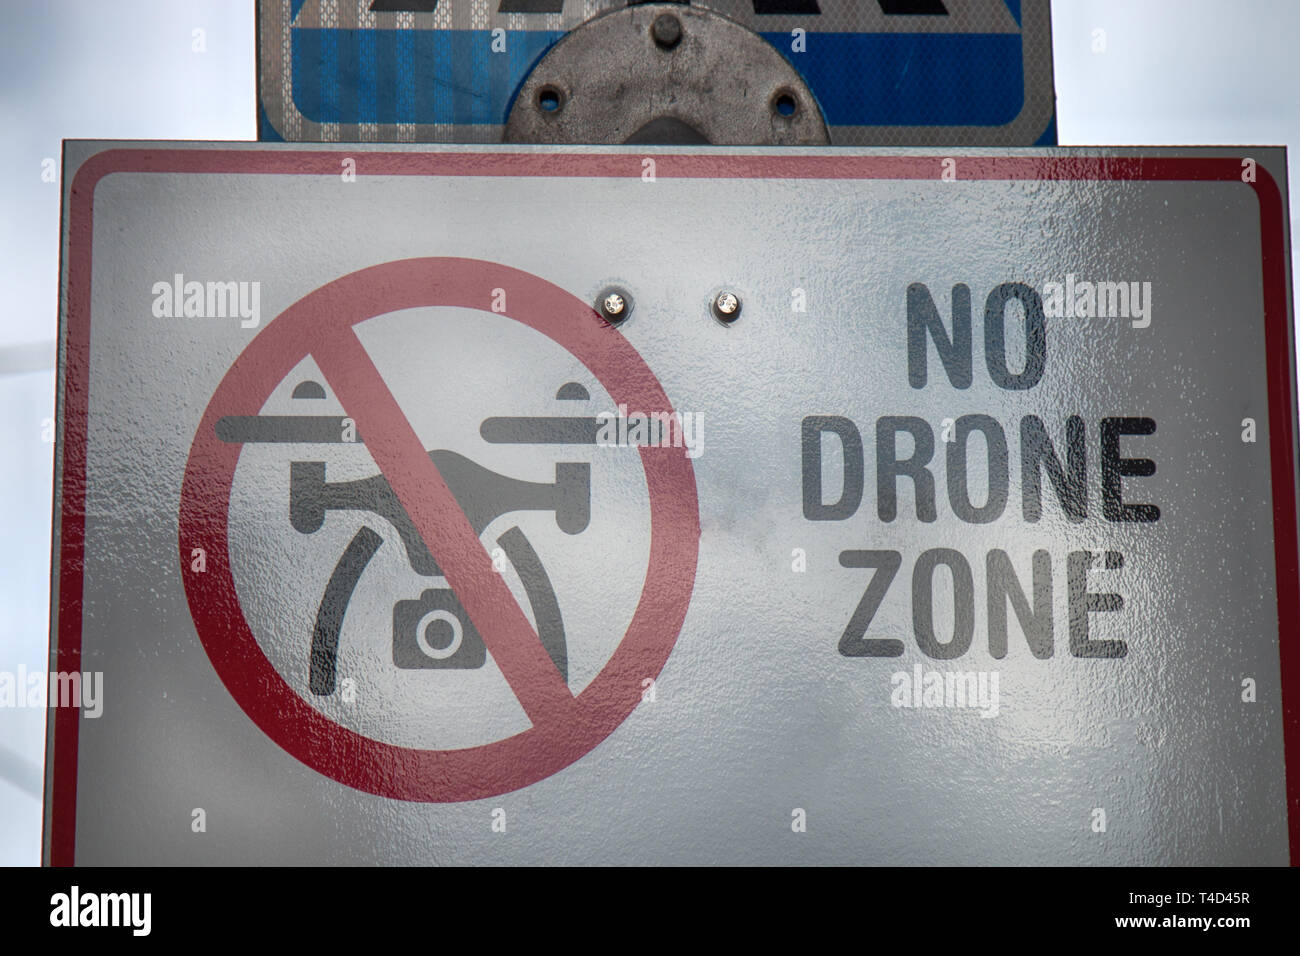 The signpost prohibits the use of drones (inhibition sign) Stock Photo